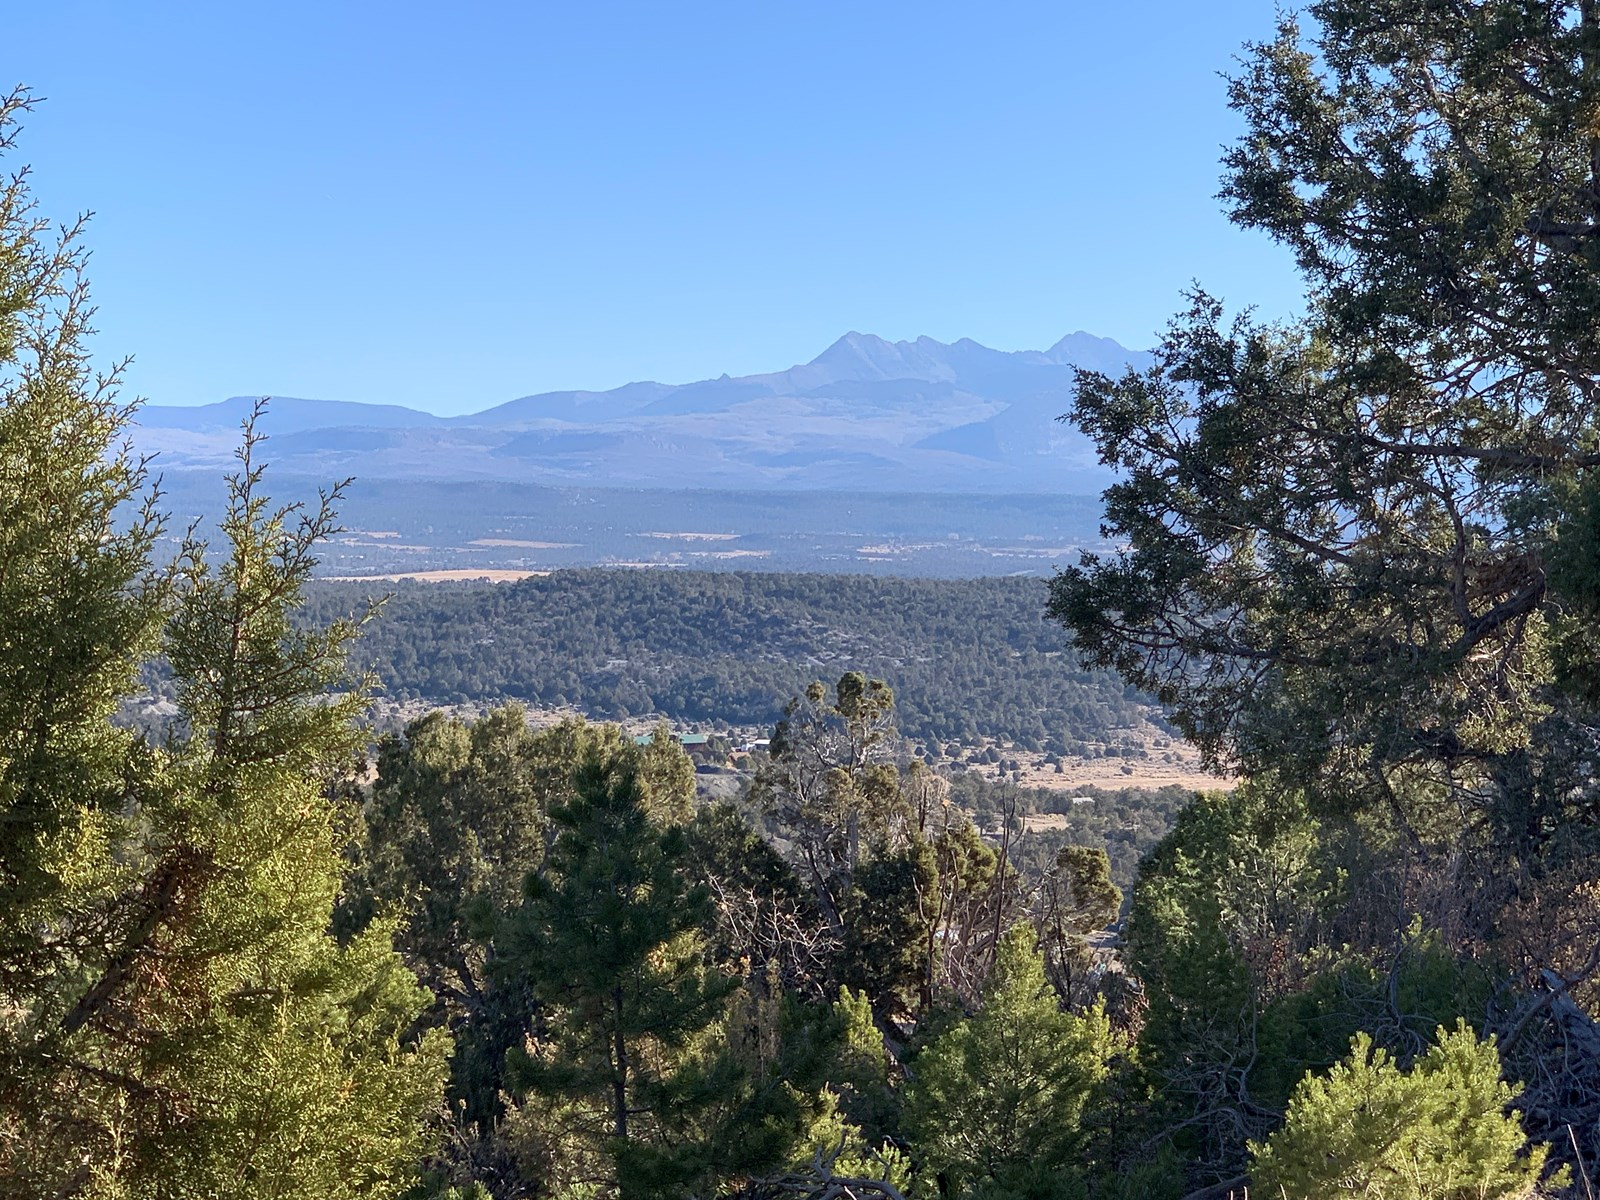 Private wooded lot with mountain views for sale, Mancos, CO